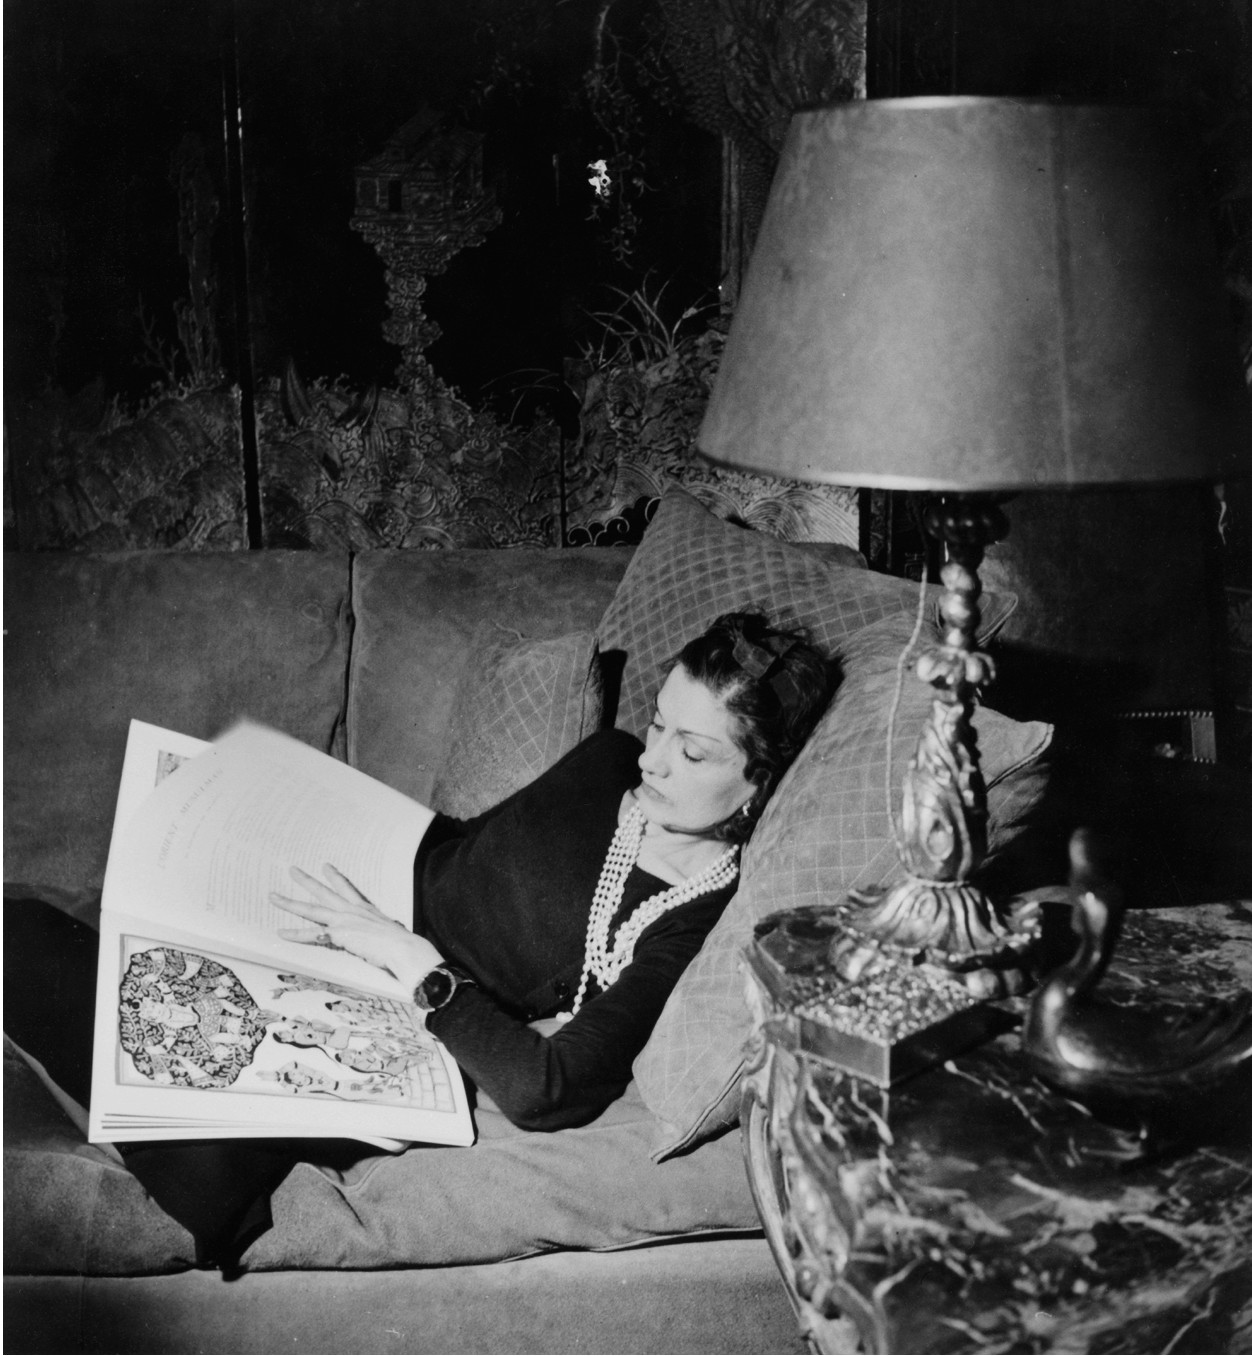 cc_venice_jean-moral_gabrielle-chanel-on-her-couch